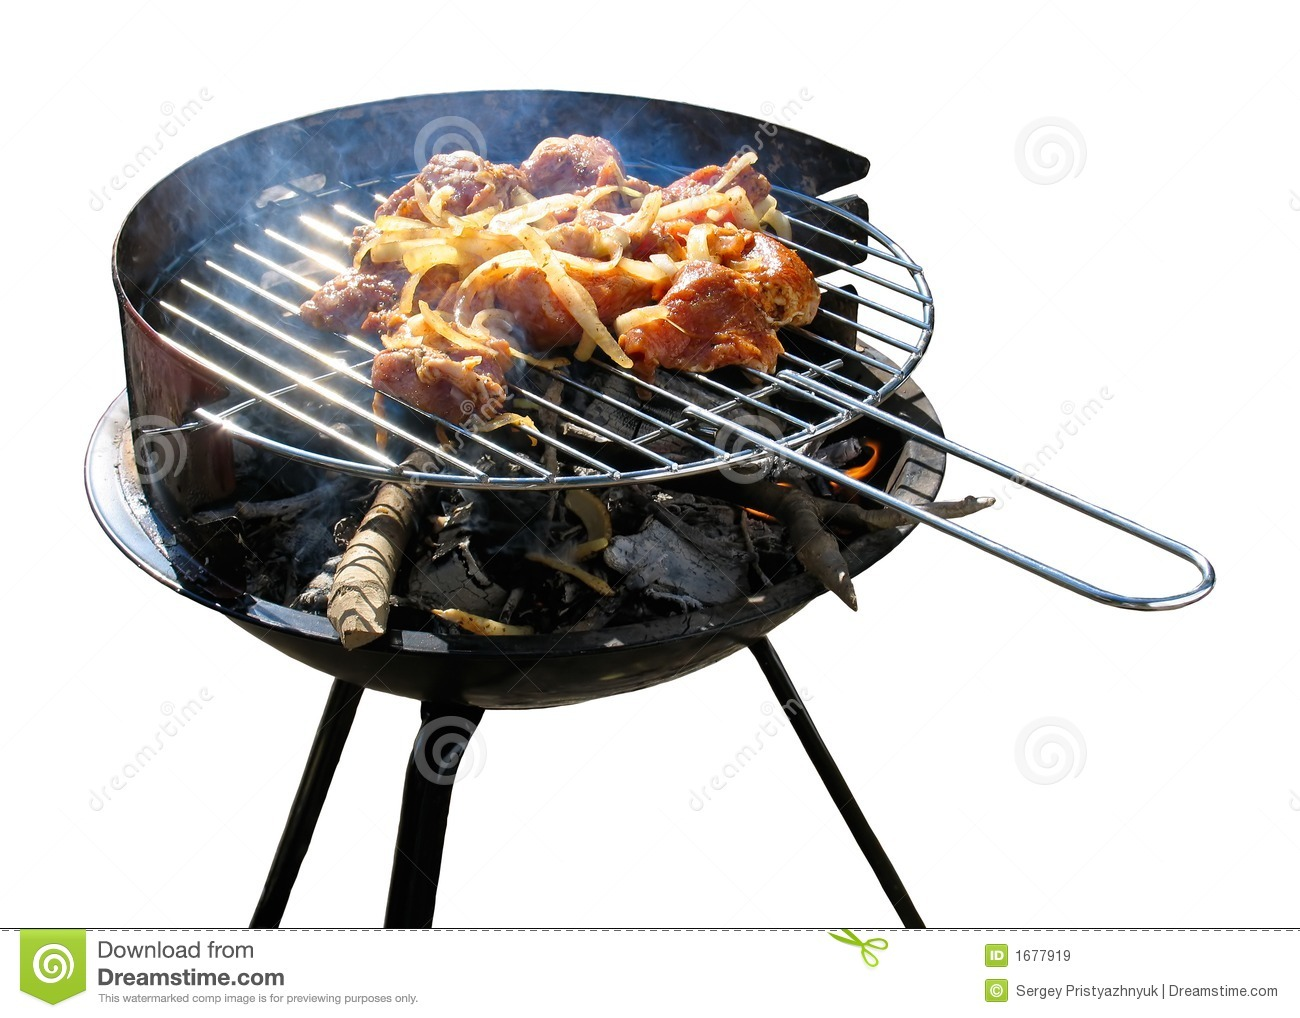 Barbecue Royalty Free Stock Images - Image: 1677919: www.dreamstime.com/royalty-free-stock-images-barbecue-image1677919